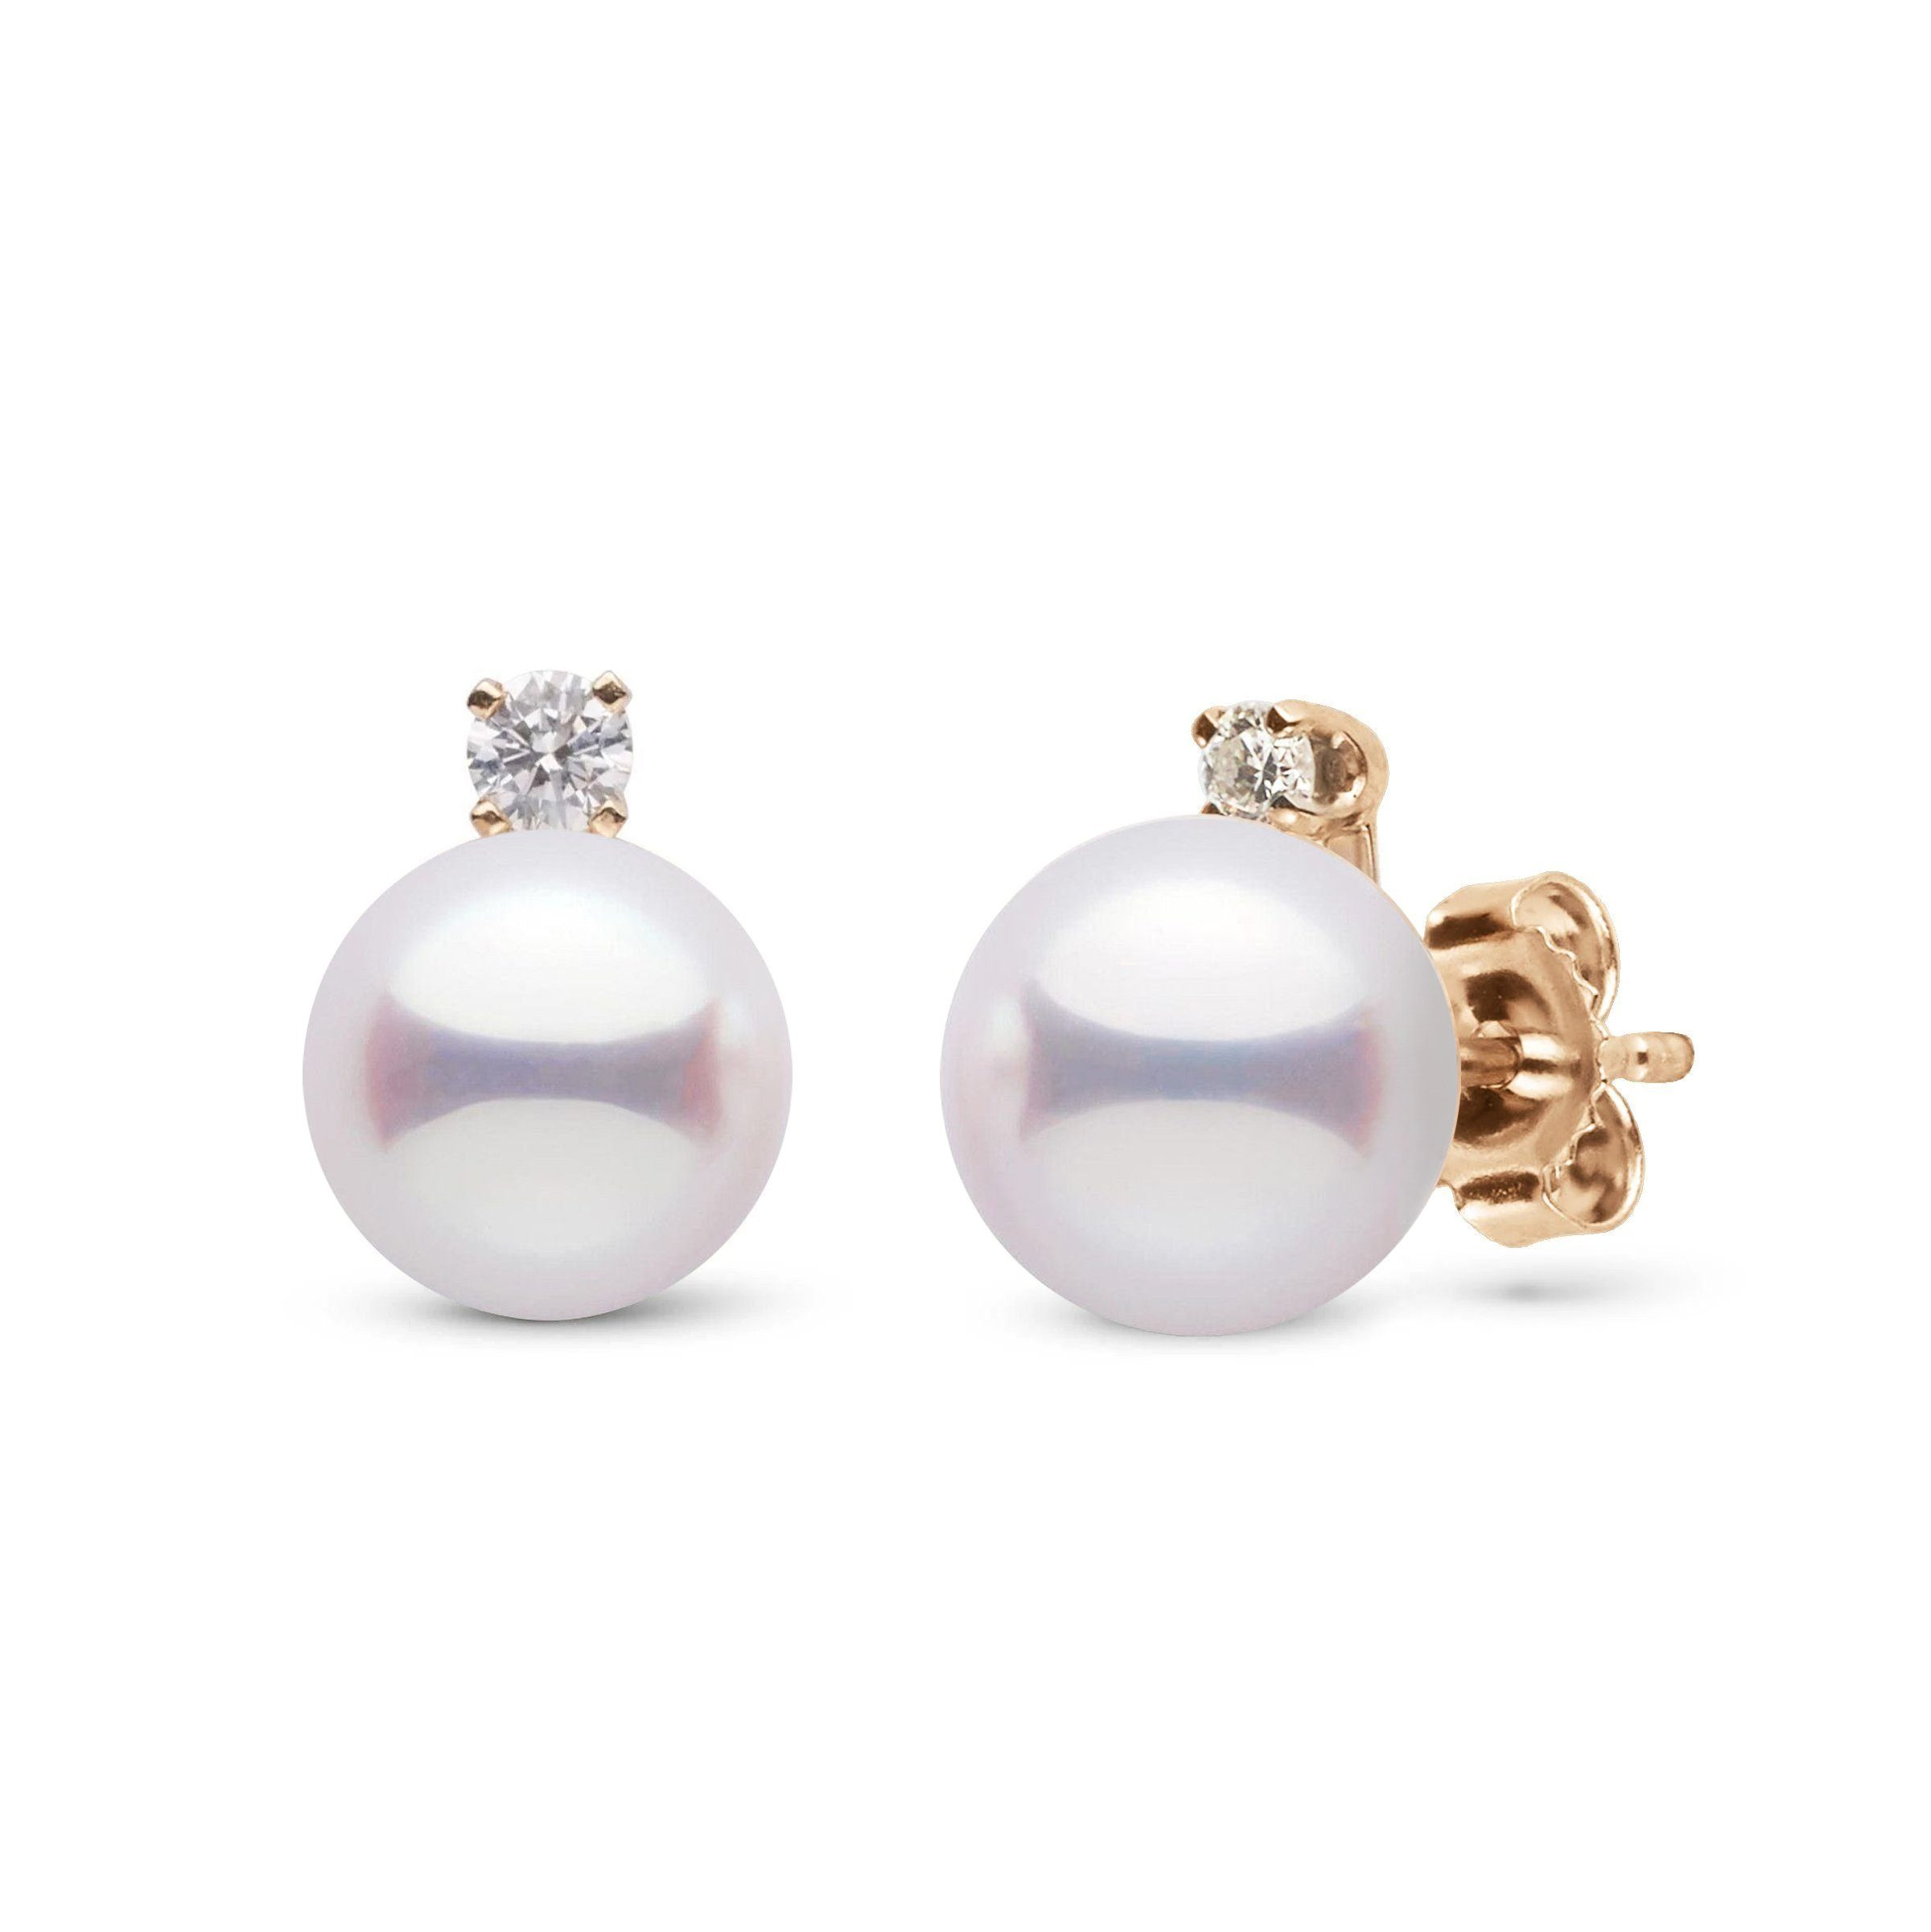 Starlight Collection 7.5-8.0 mm White Hanadama Pearl and Diamond Stud Earrings